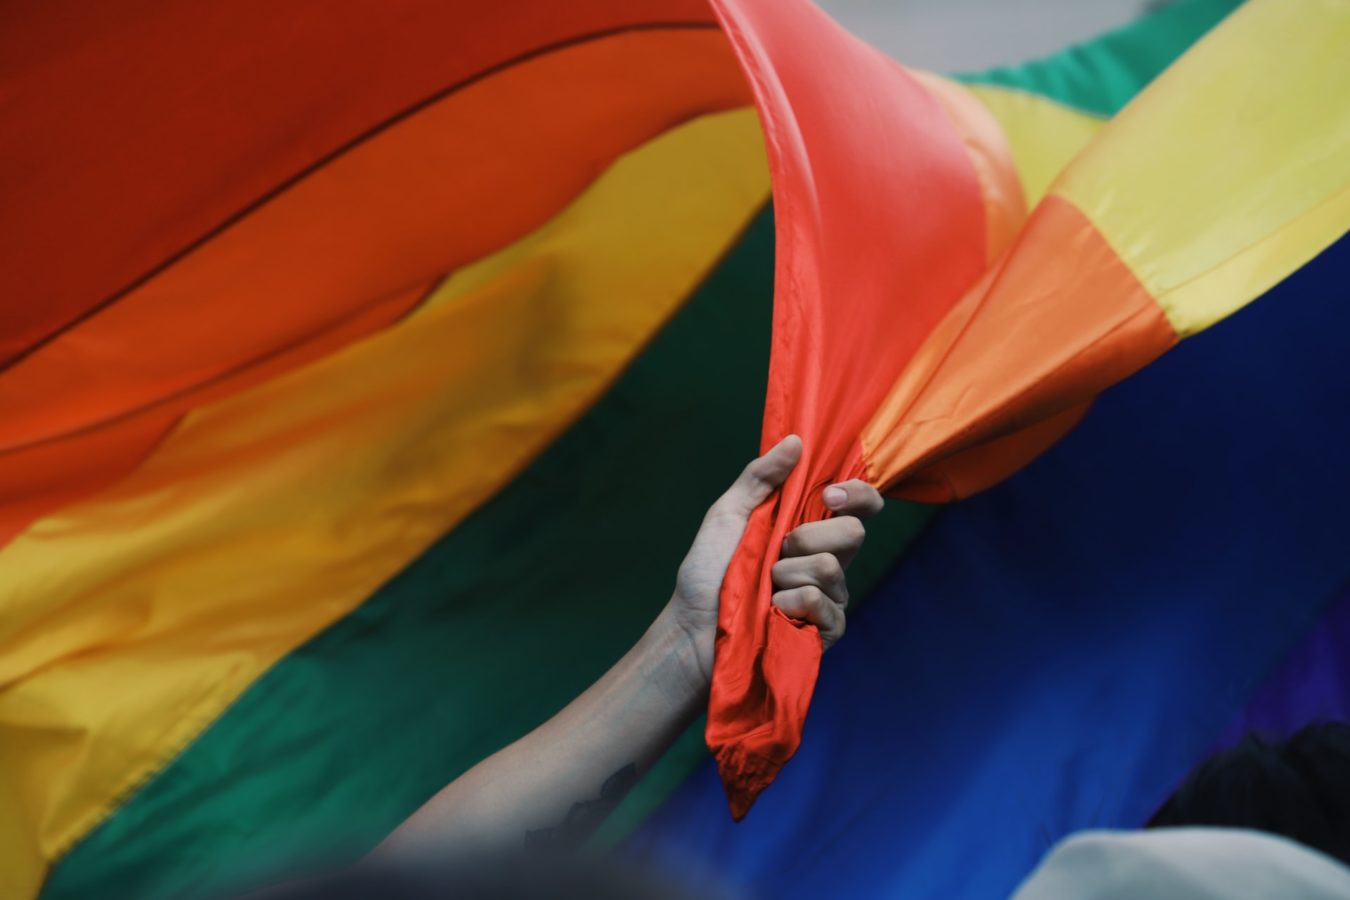 What is heteronormativity and how does it (negatively) impact your everyday lives?